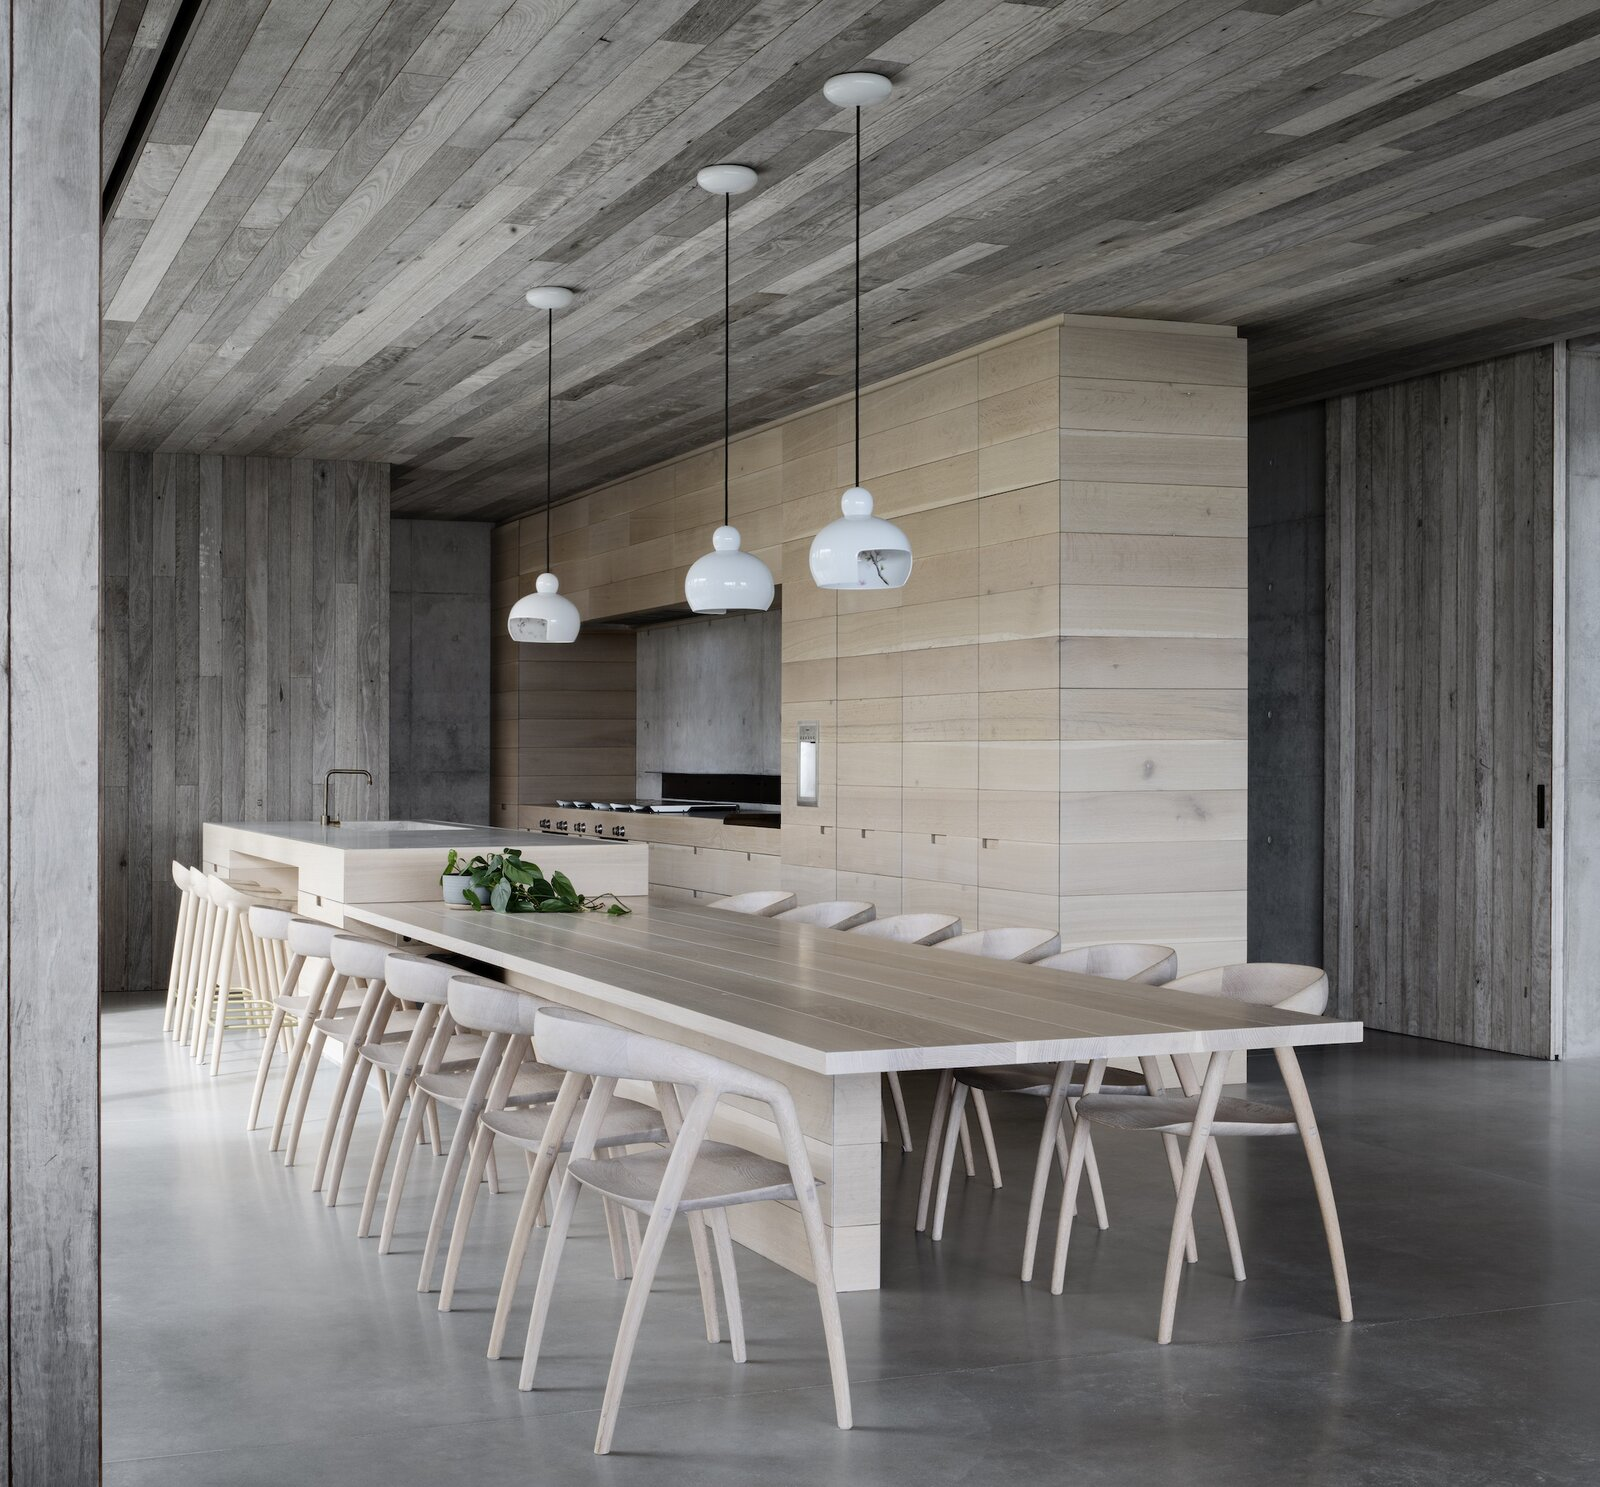 Dining and kitchen of Silver Linings by Rachcoff Vella Architects.